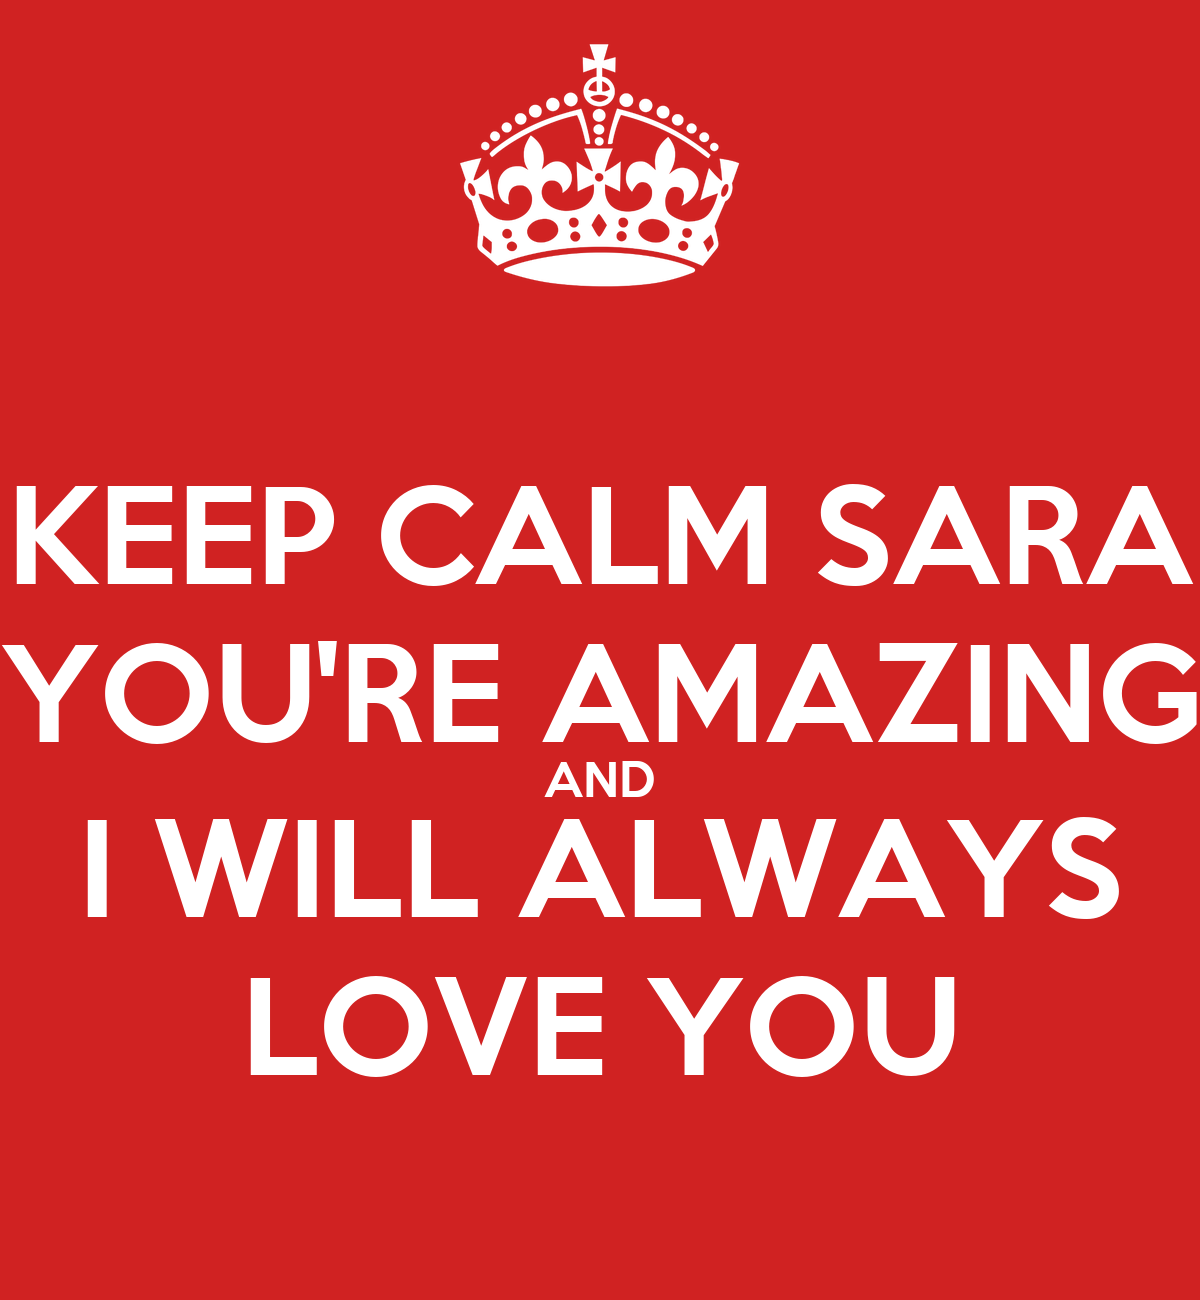 You Re Amazing Love: KEEP CALM SARA YOU'RE AMAZING AND I WILL ALWAYS LOVE YOU